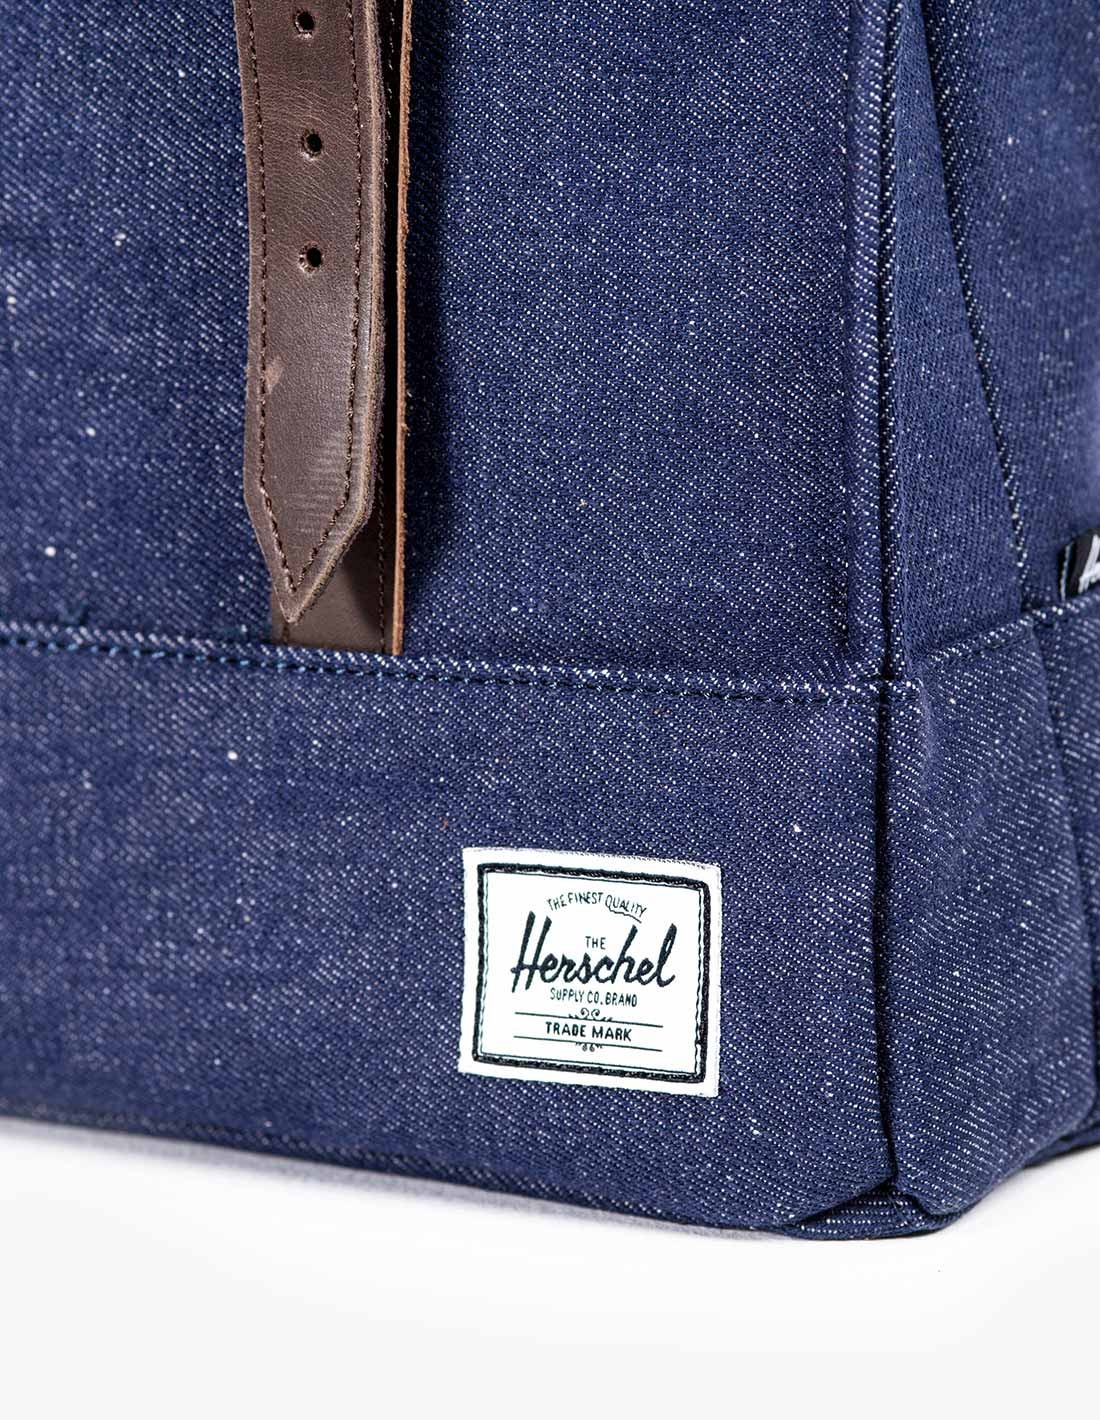 Herschel Supply Survey Canvas in Navy Indigo Denim